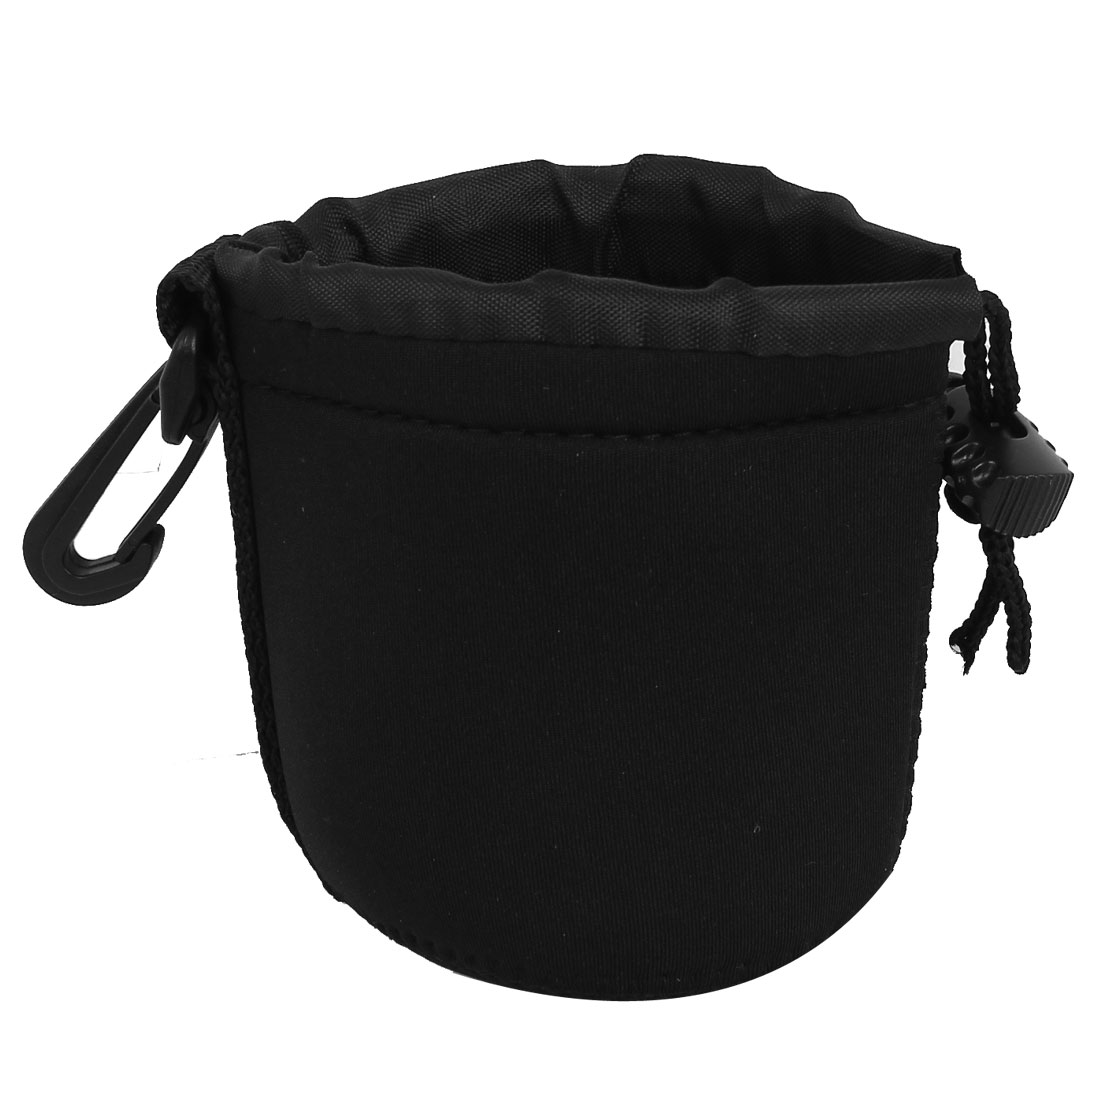 Size S Neoprene Lens Carrying Pouch Bag Holder Black for Digital Camera